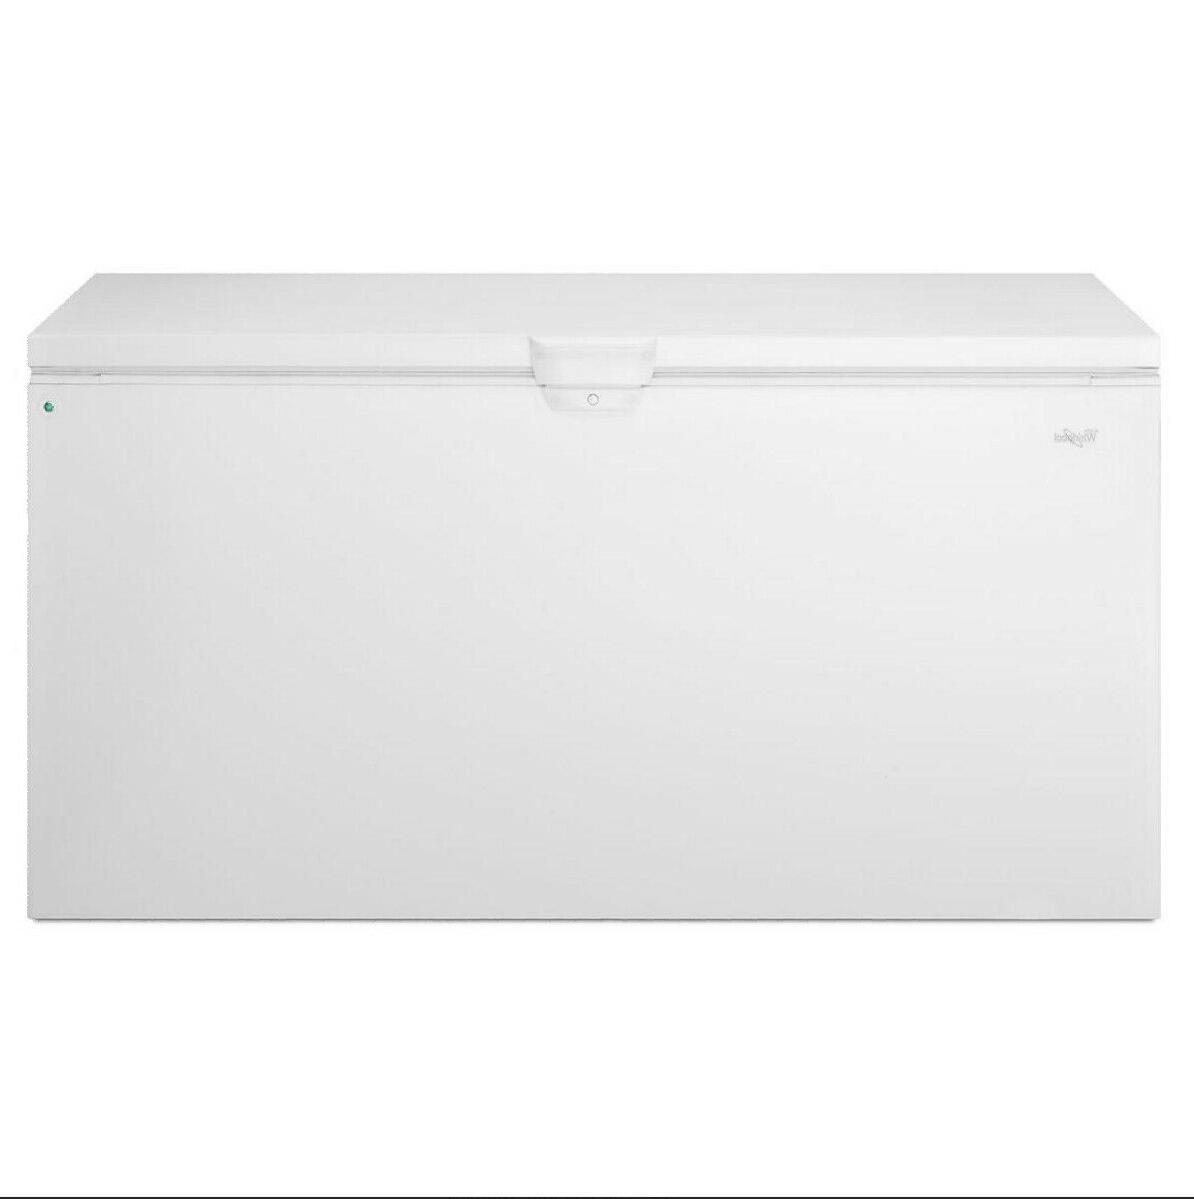 22 cu ft chest freezer with extra